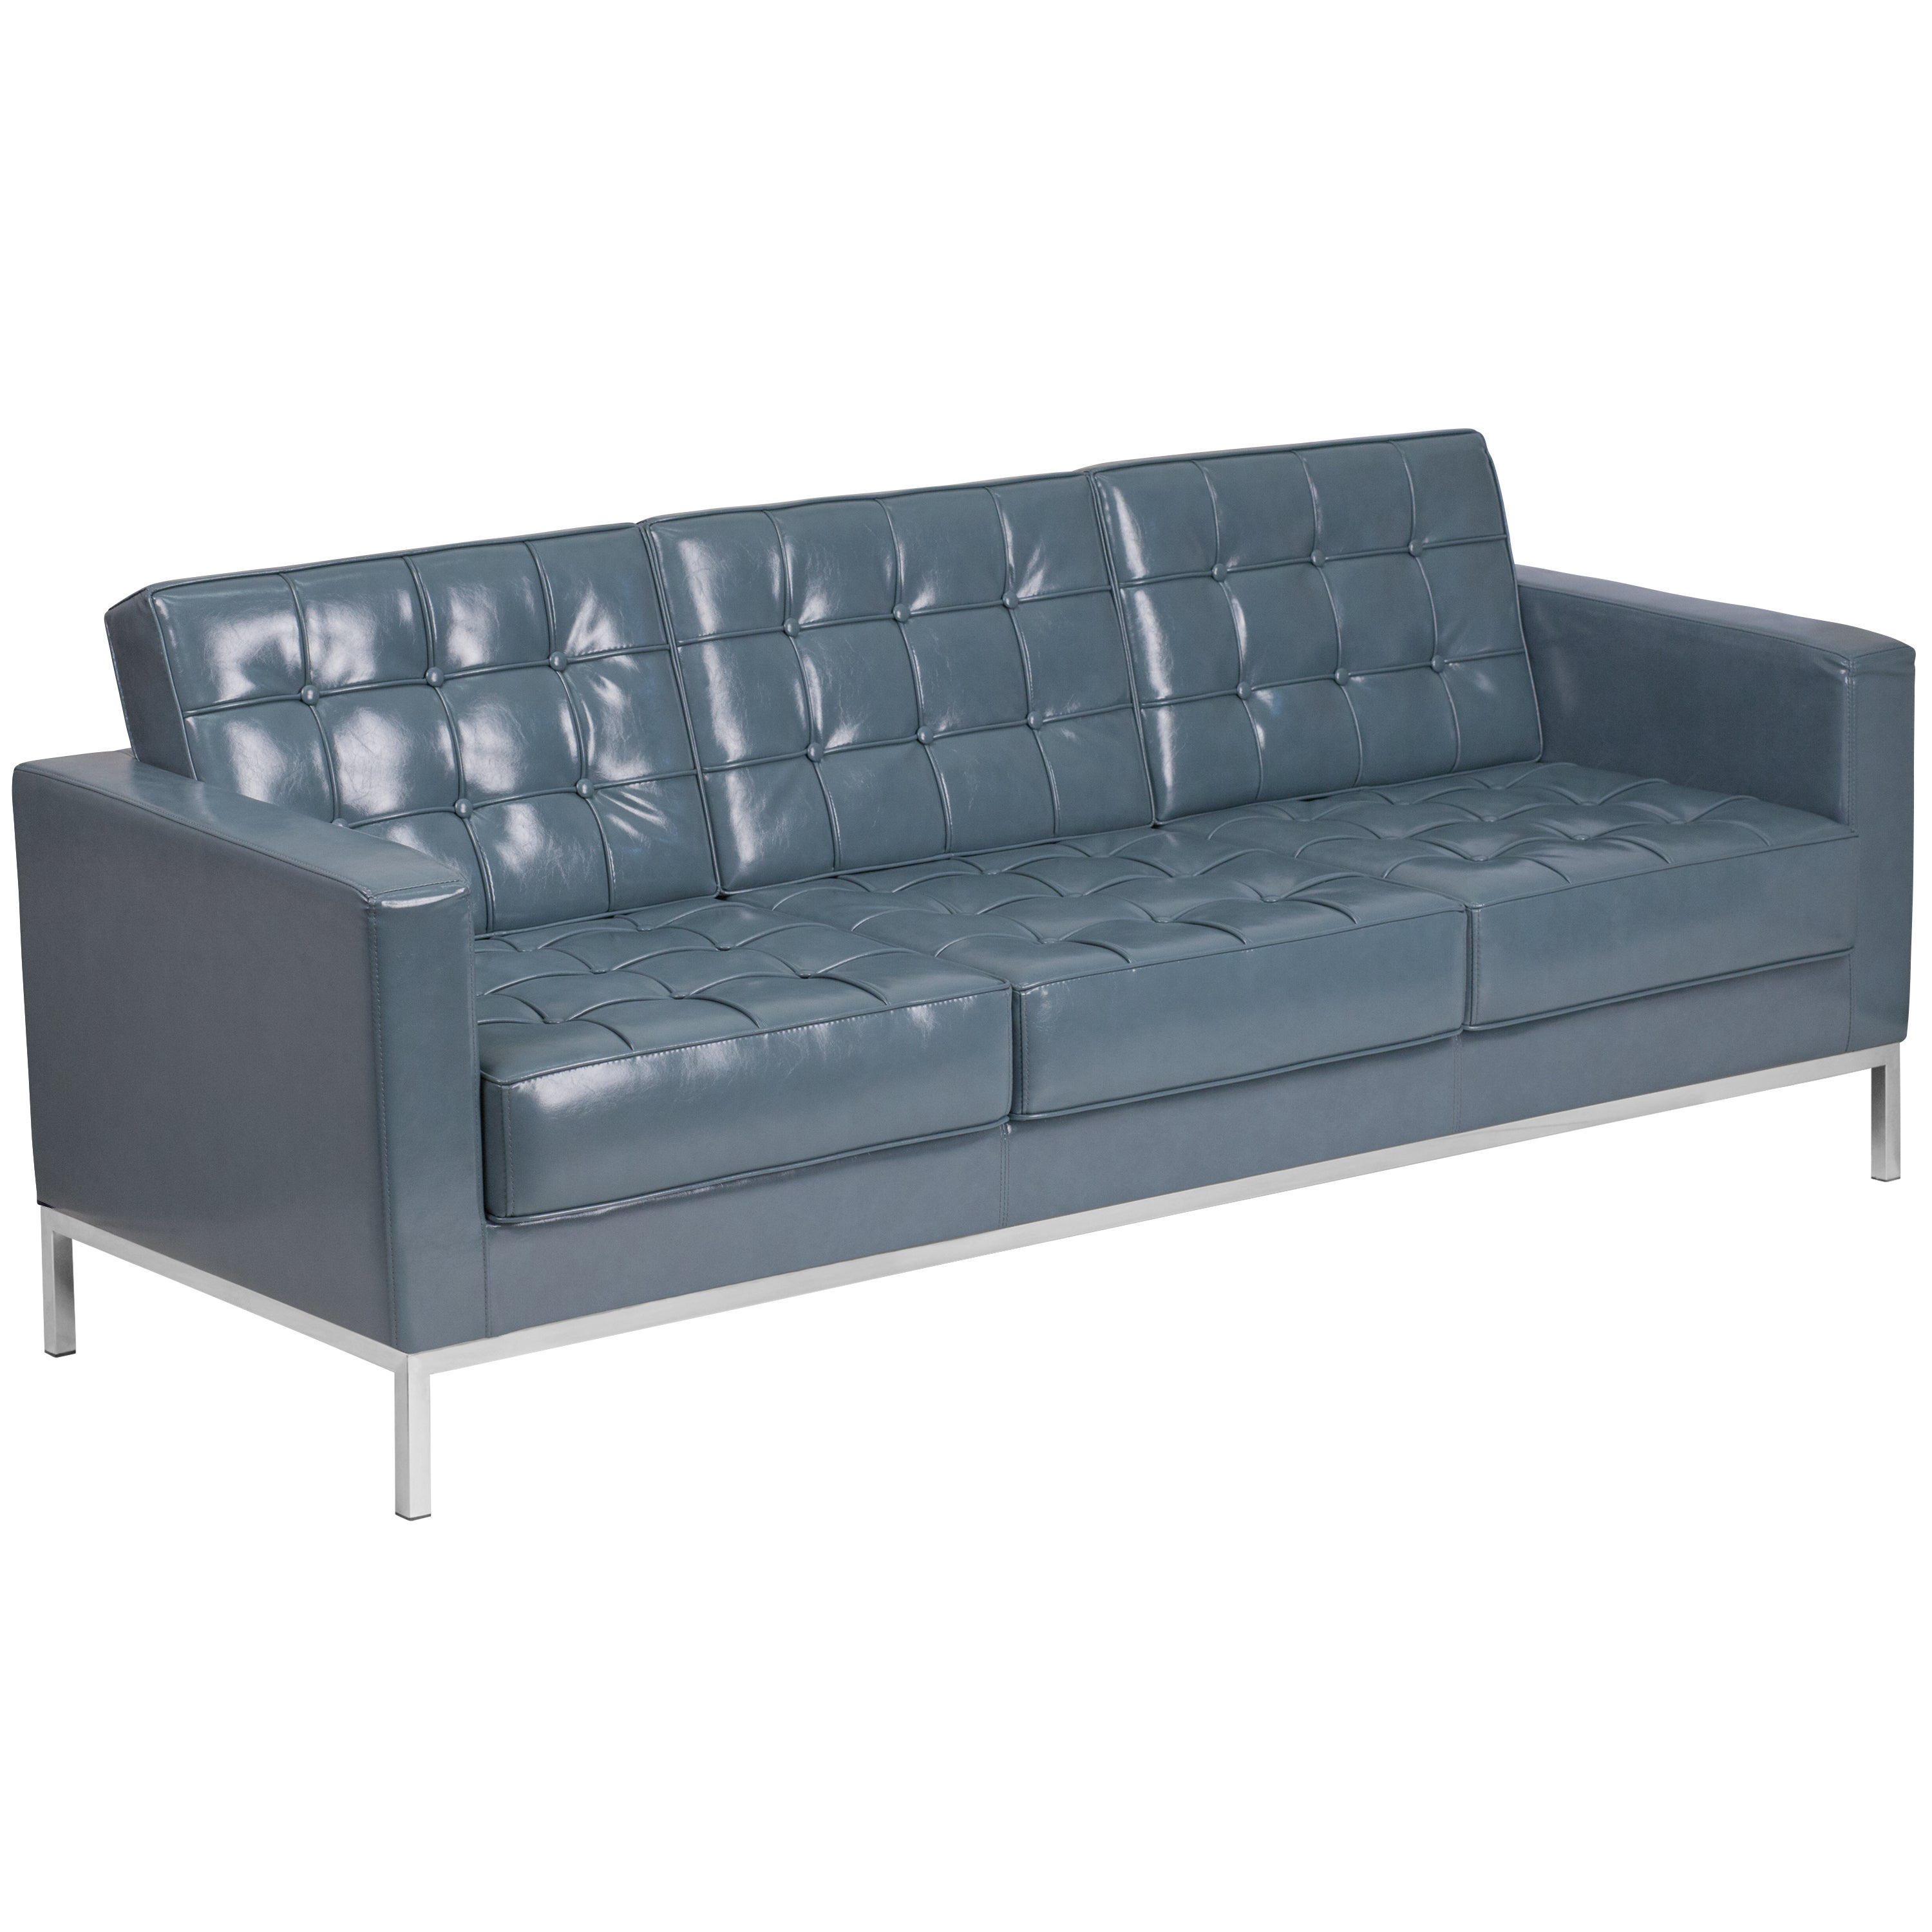 Shop Strick & Bolton Wolcott Contemporary Faux Leather Sofa with ...